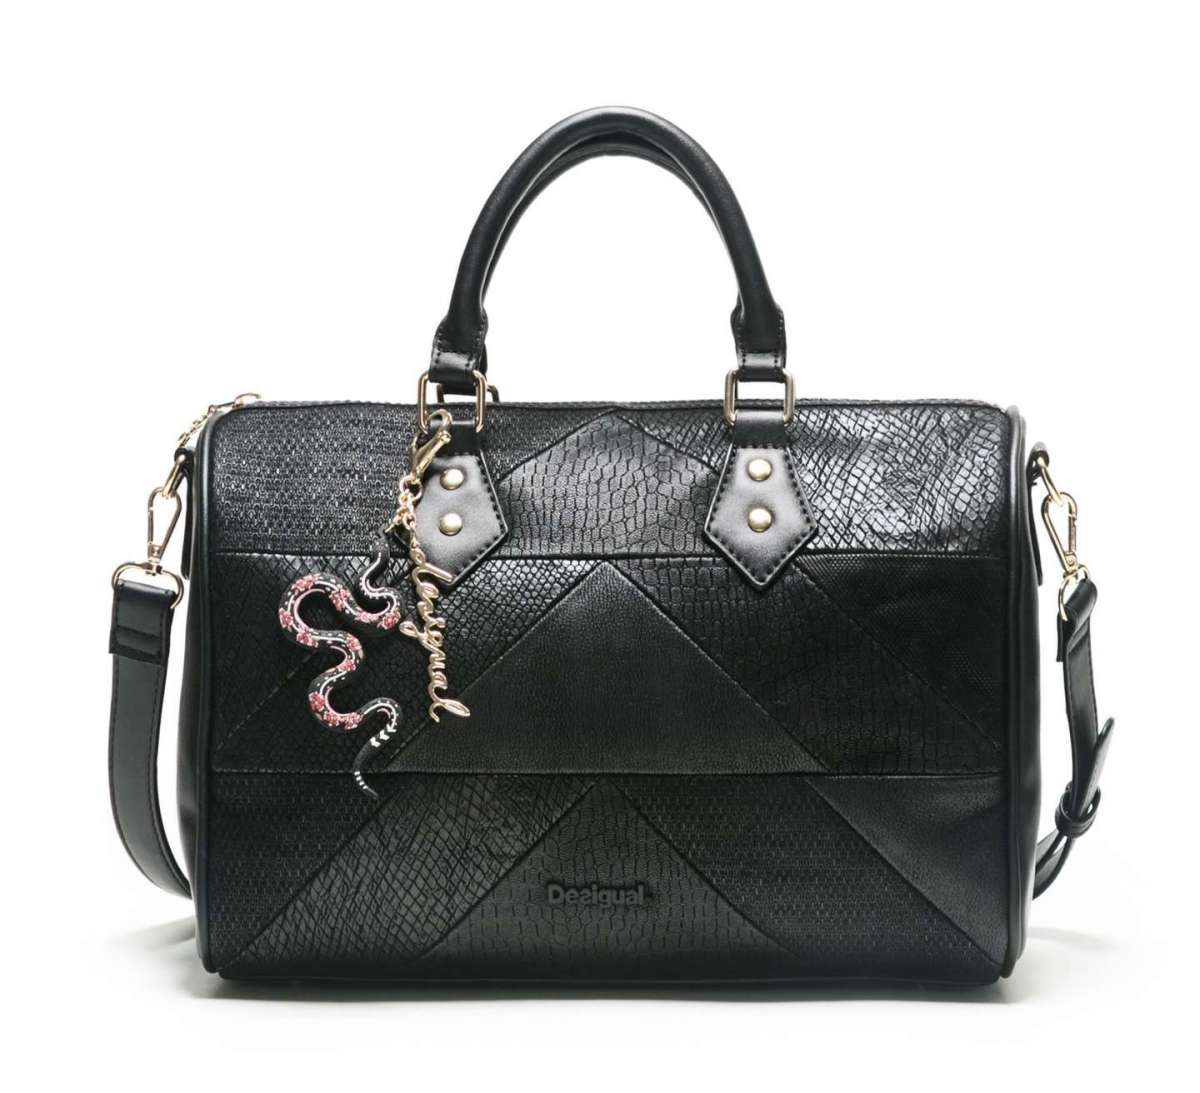 Bauletto nero Snake Patch Desigual